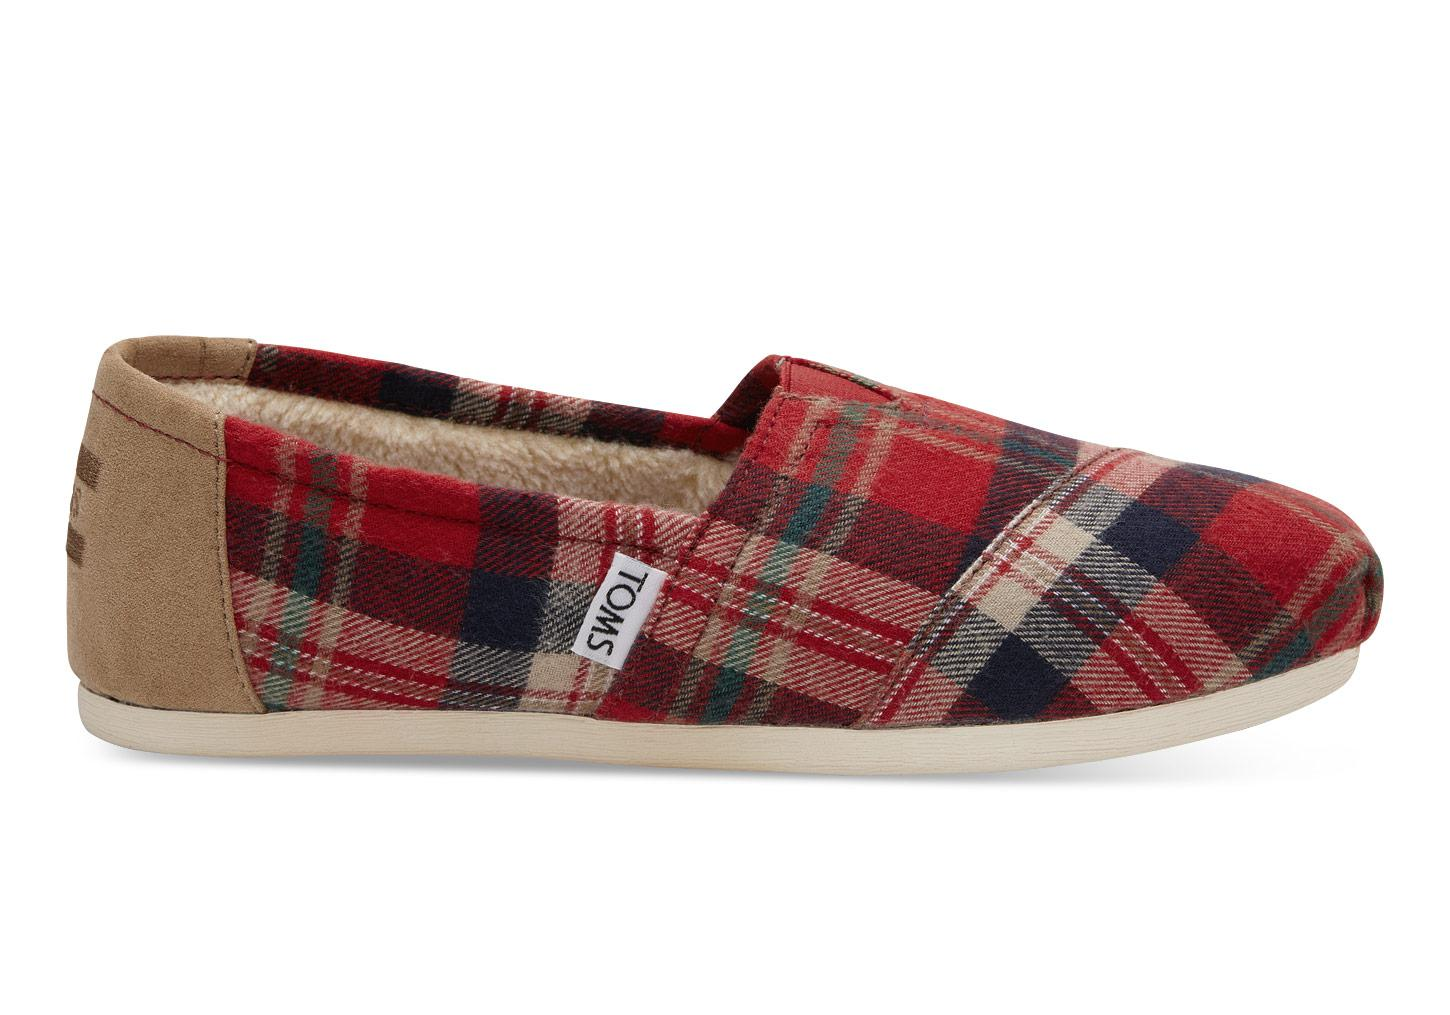 9327069b7ef Lyst - TOMS Holiday Plaid Flat Shoes in Red